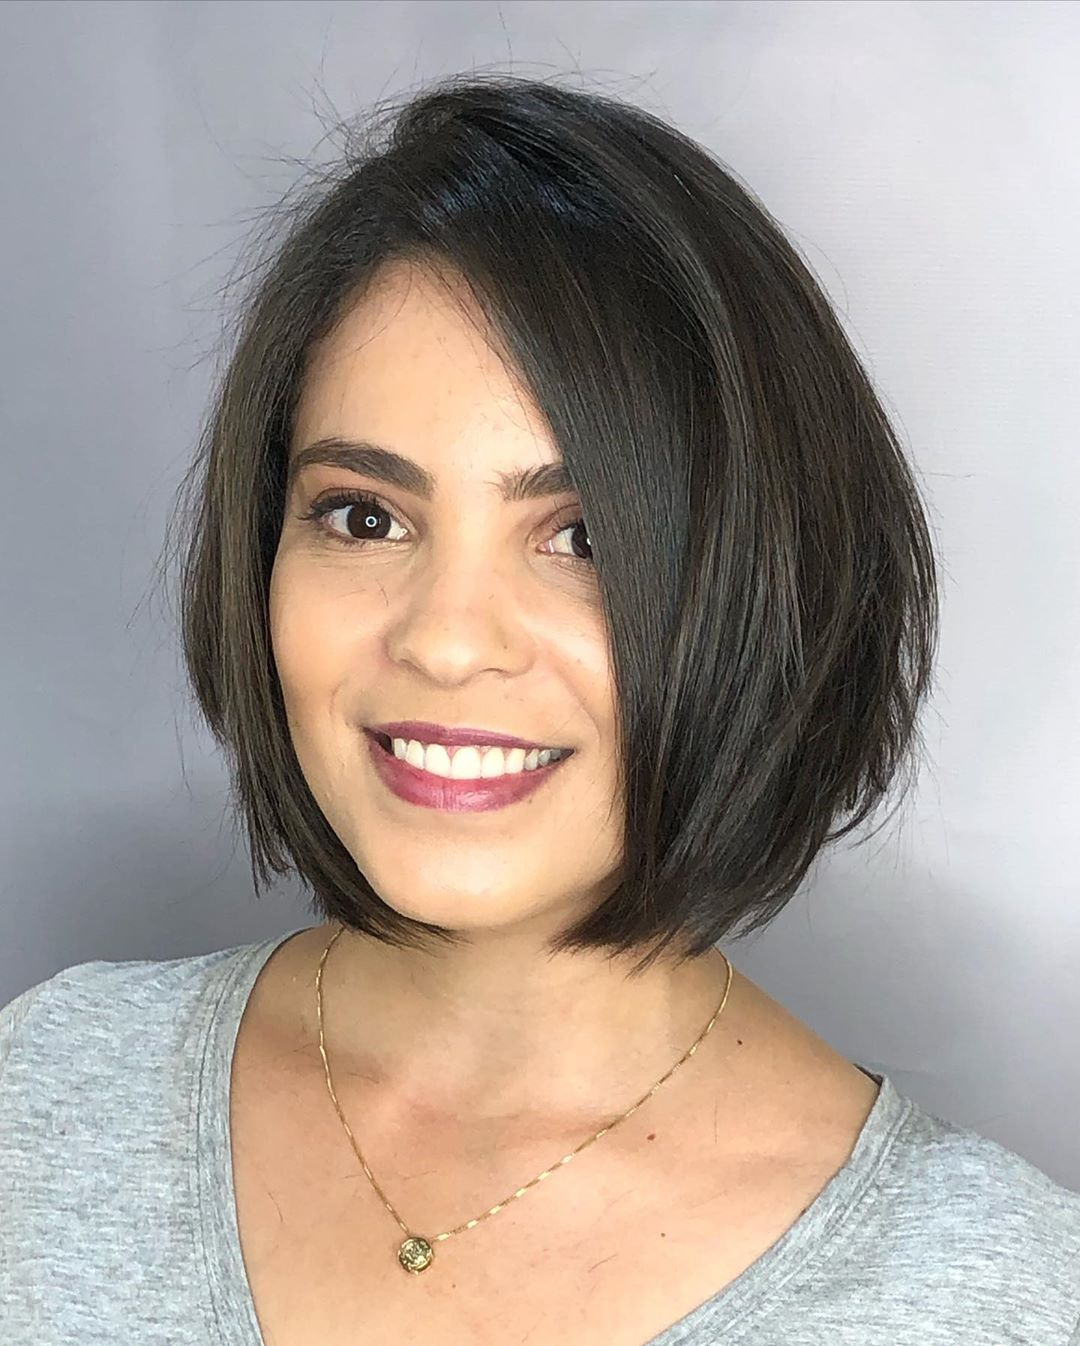 Chin-Length Bob Cut for Girls